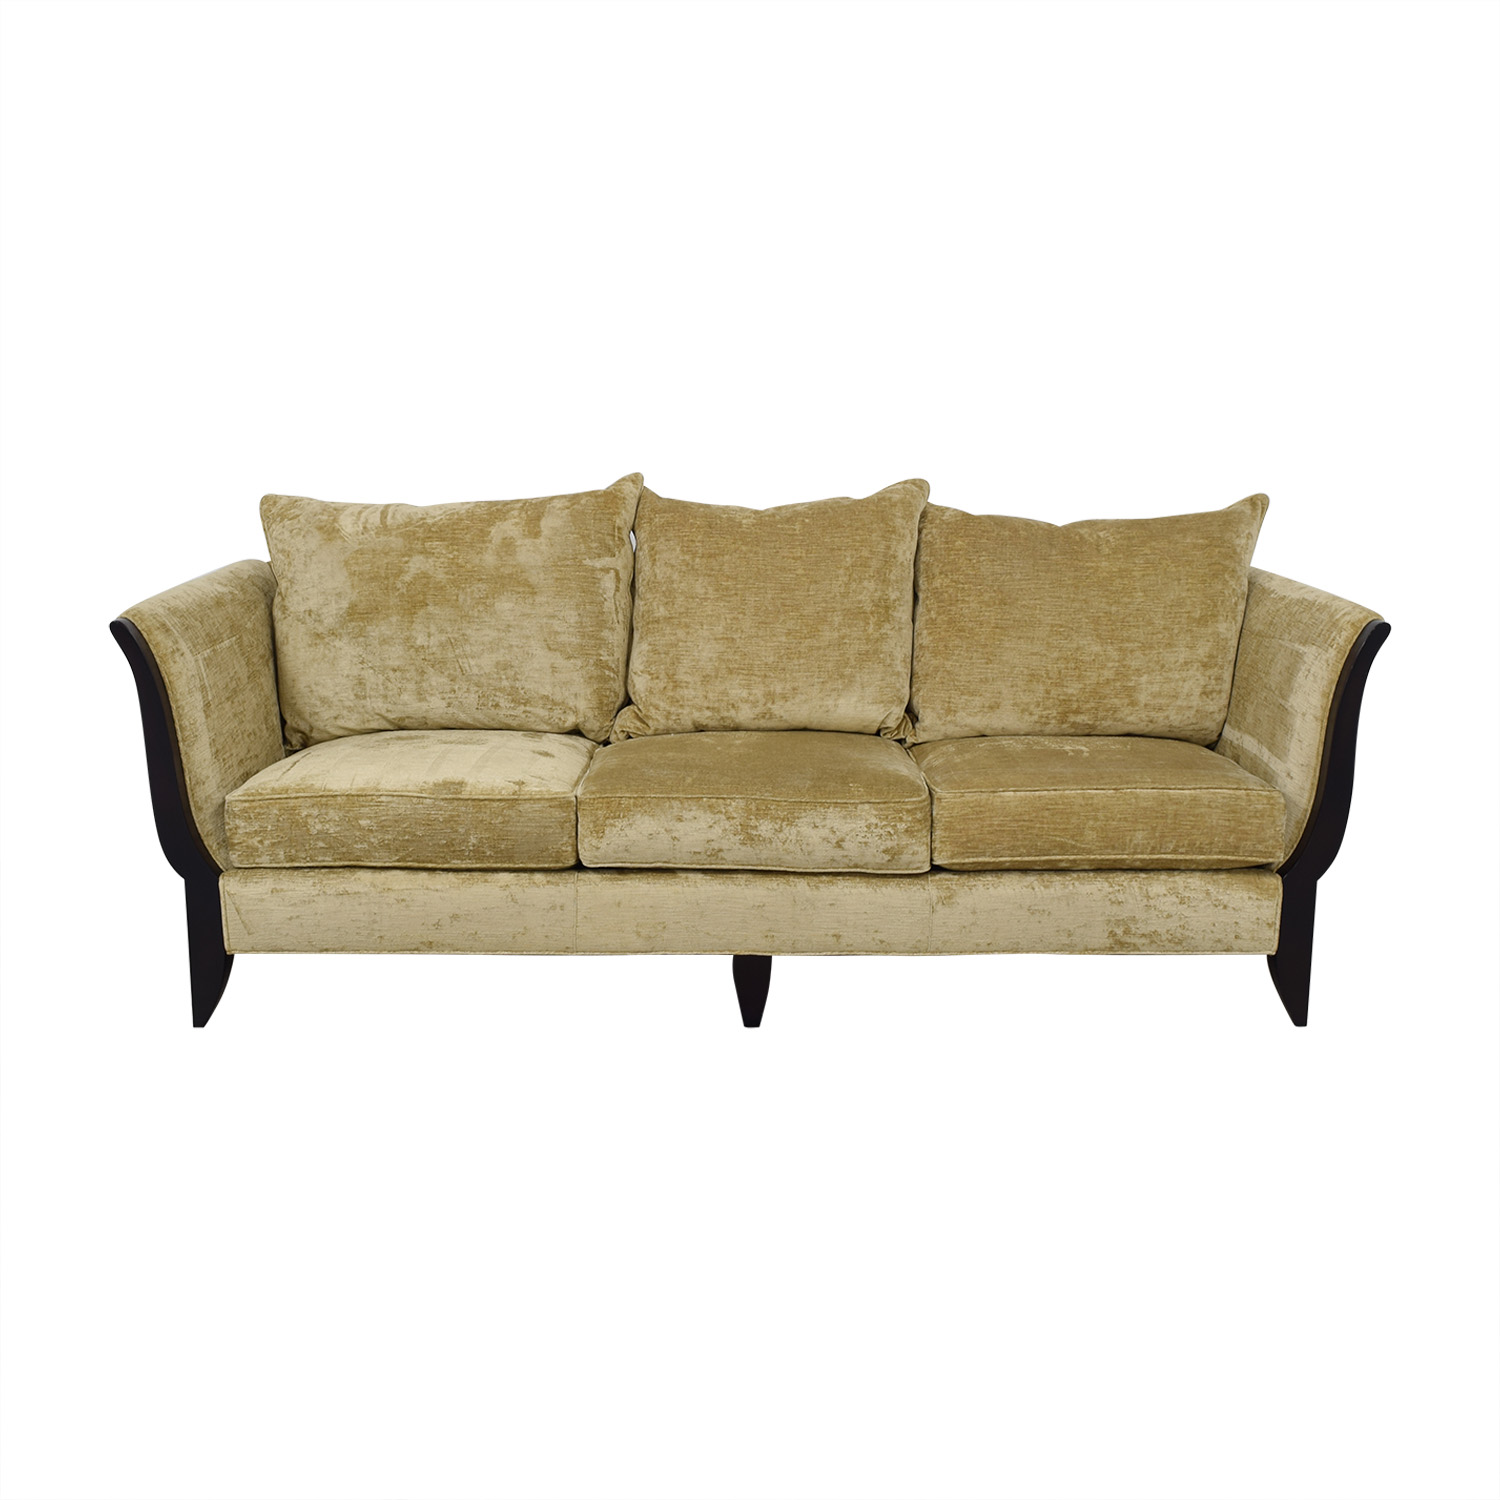 Swaim Swaim Cabriole Sofa coupon